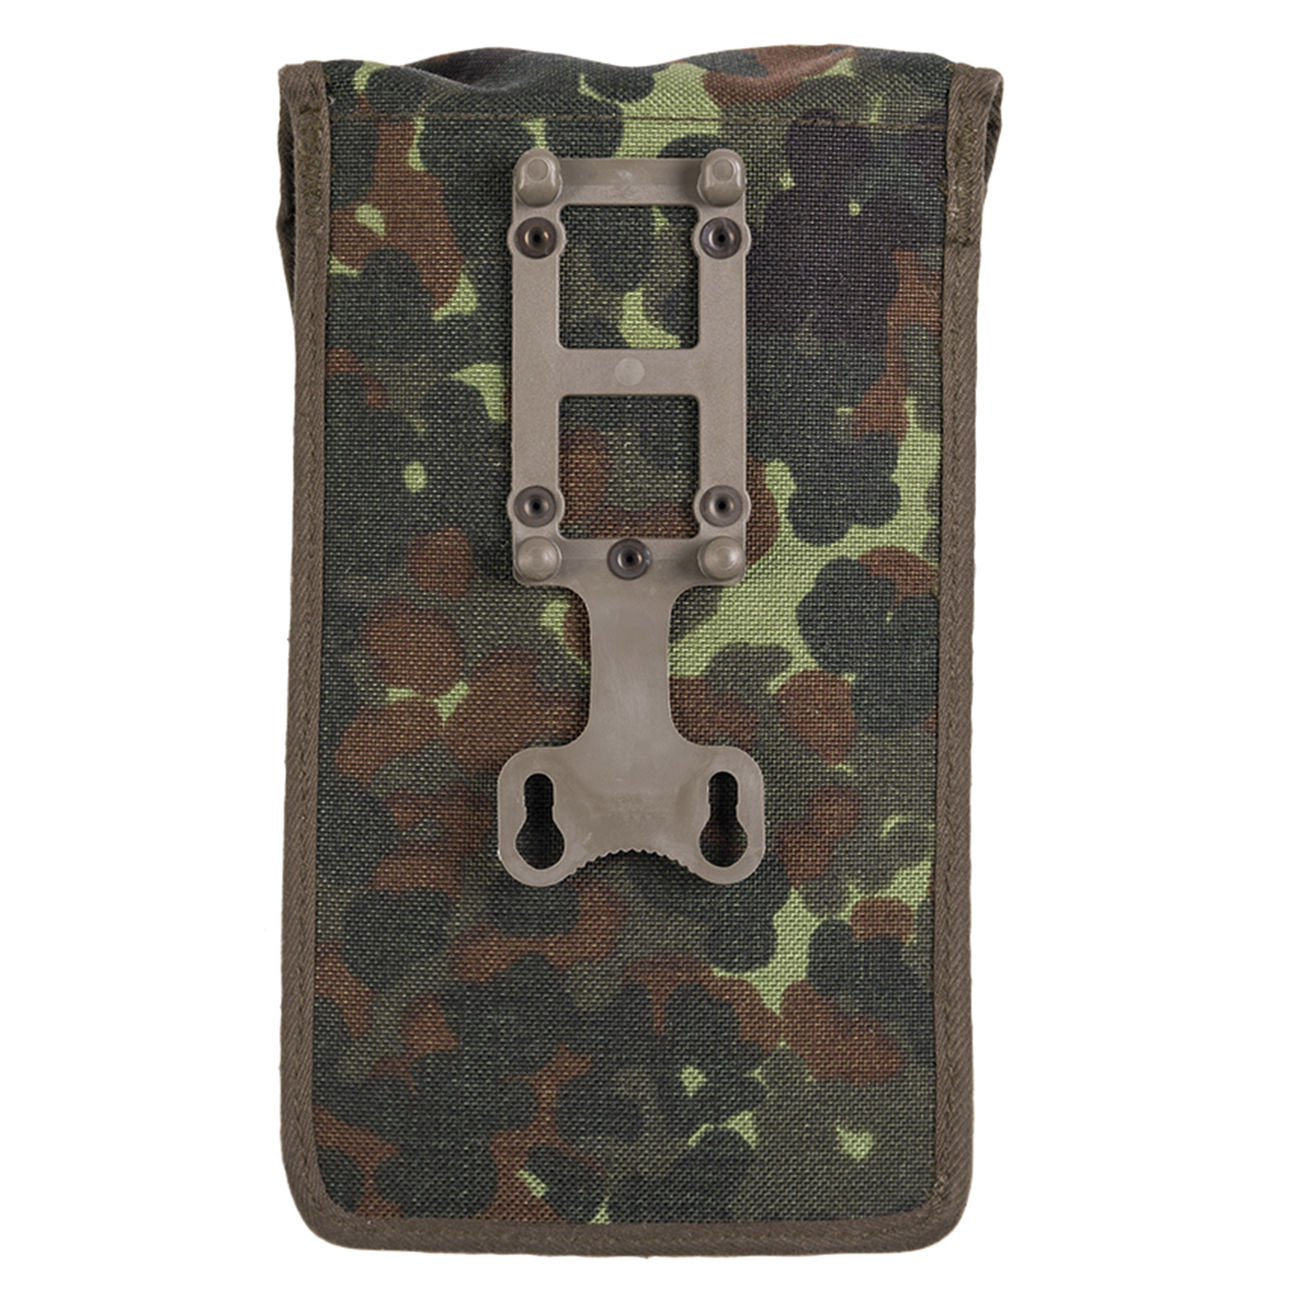 BW Magazintasche MP2 flecktarn 1